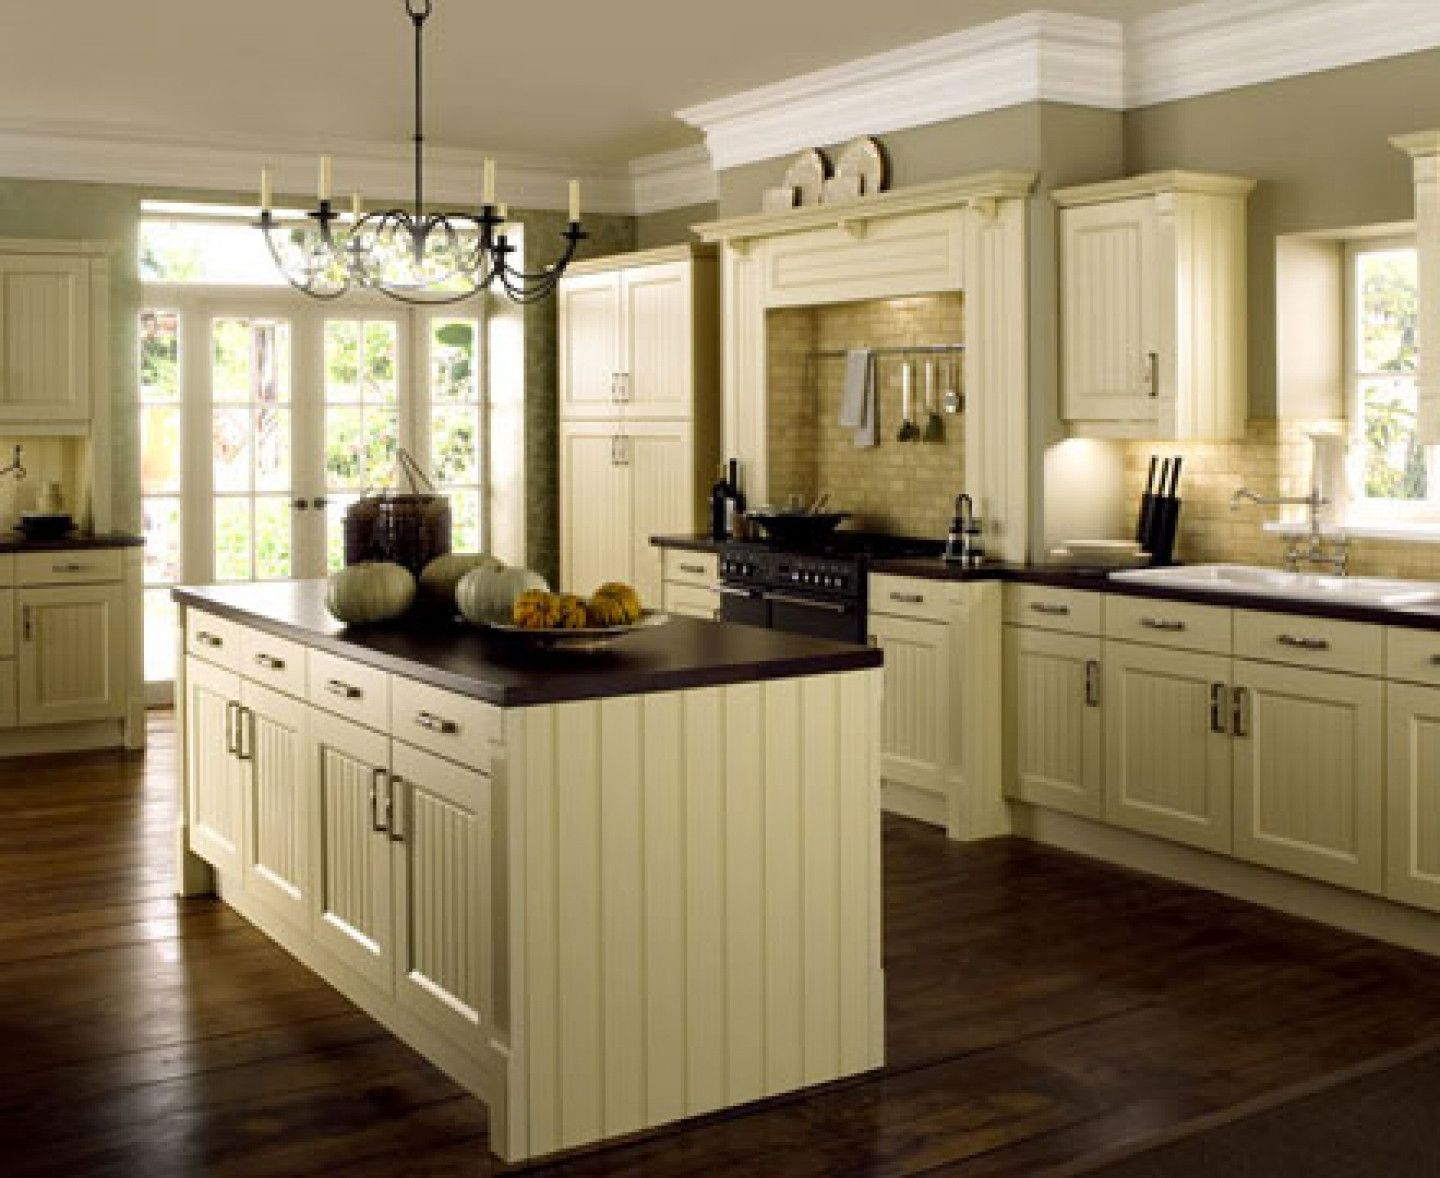 2019 Cream Cabinets With Black Granite Kitchen Decorating Ideas Themes Check More At Http Ww Traditional Kitchen Design Country Kitchen White Wood Kitchens